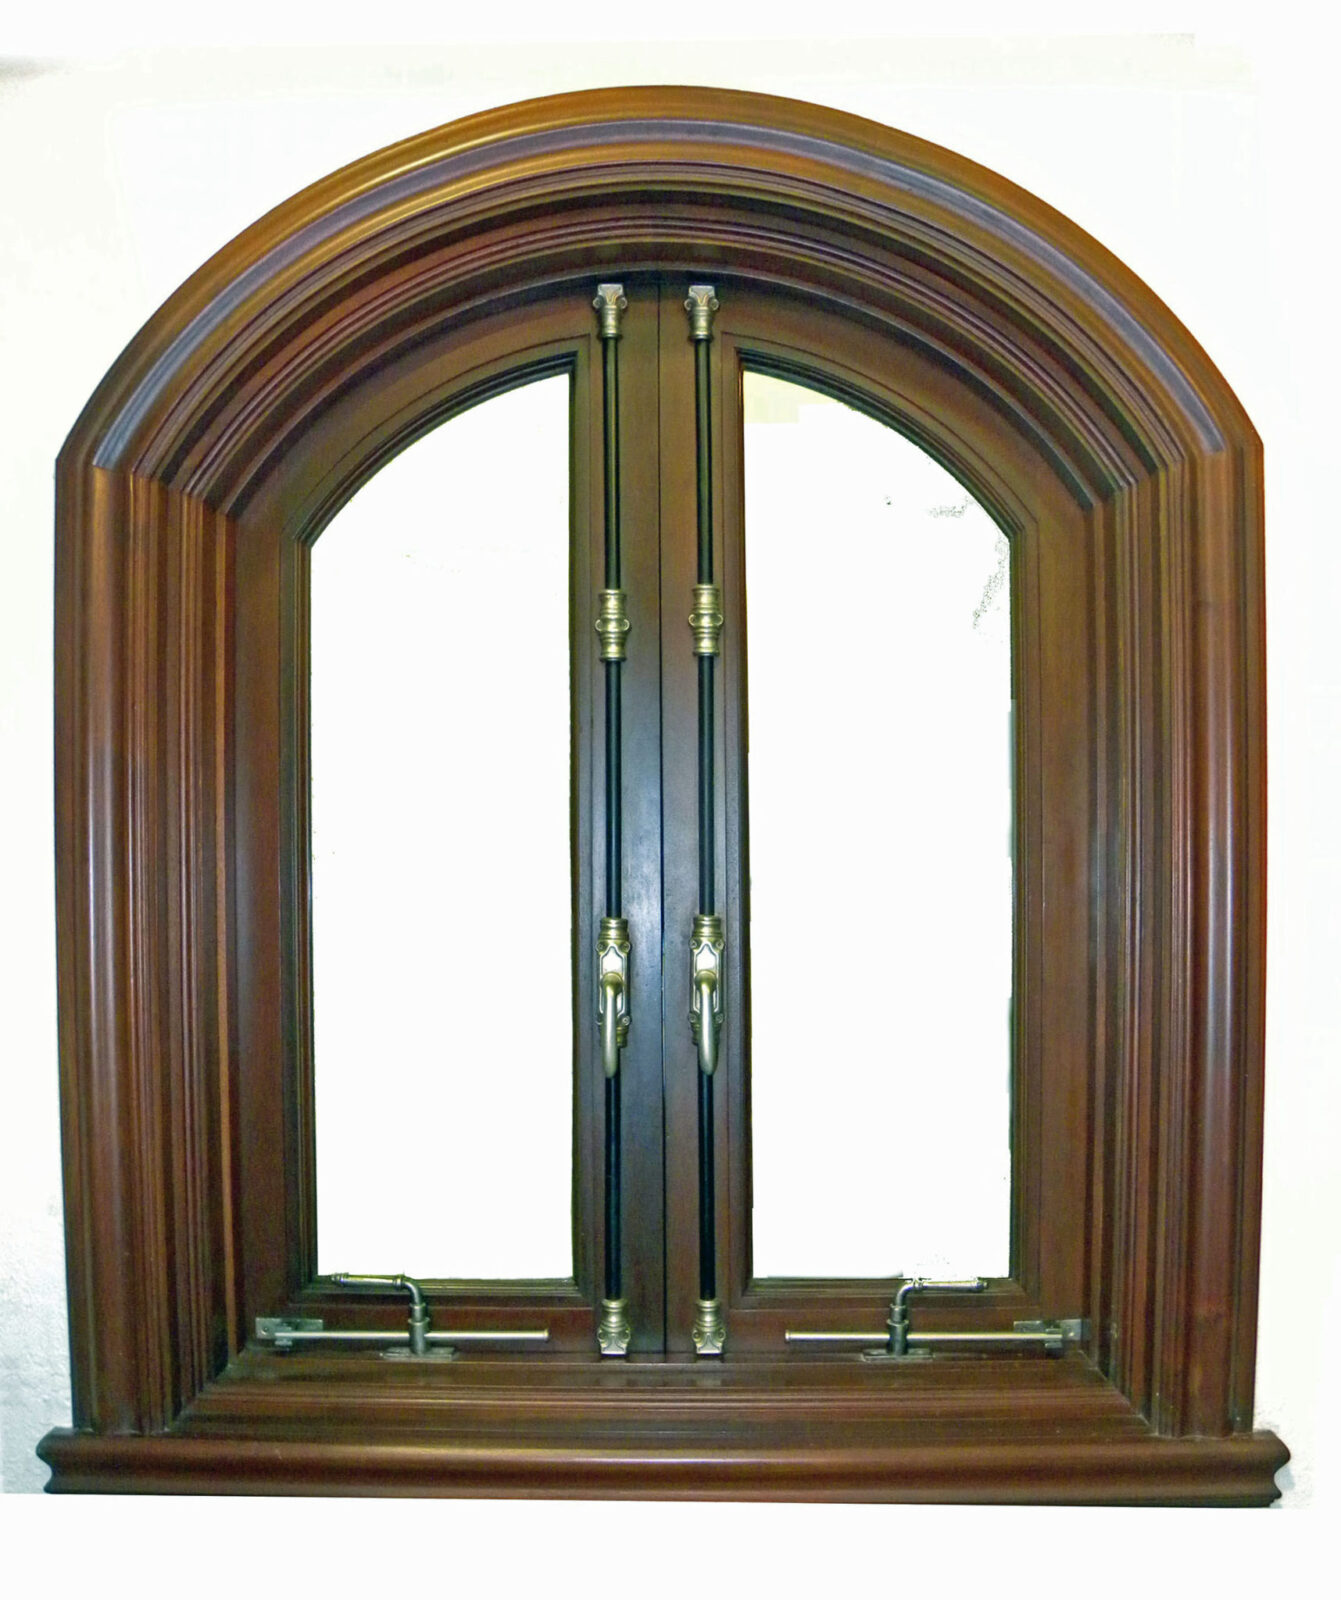 MODIGLIANI MAHOGANY WINDOWS